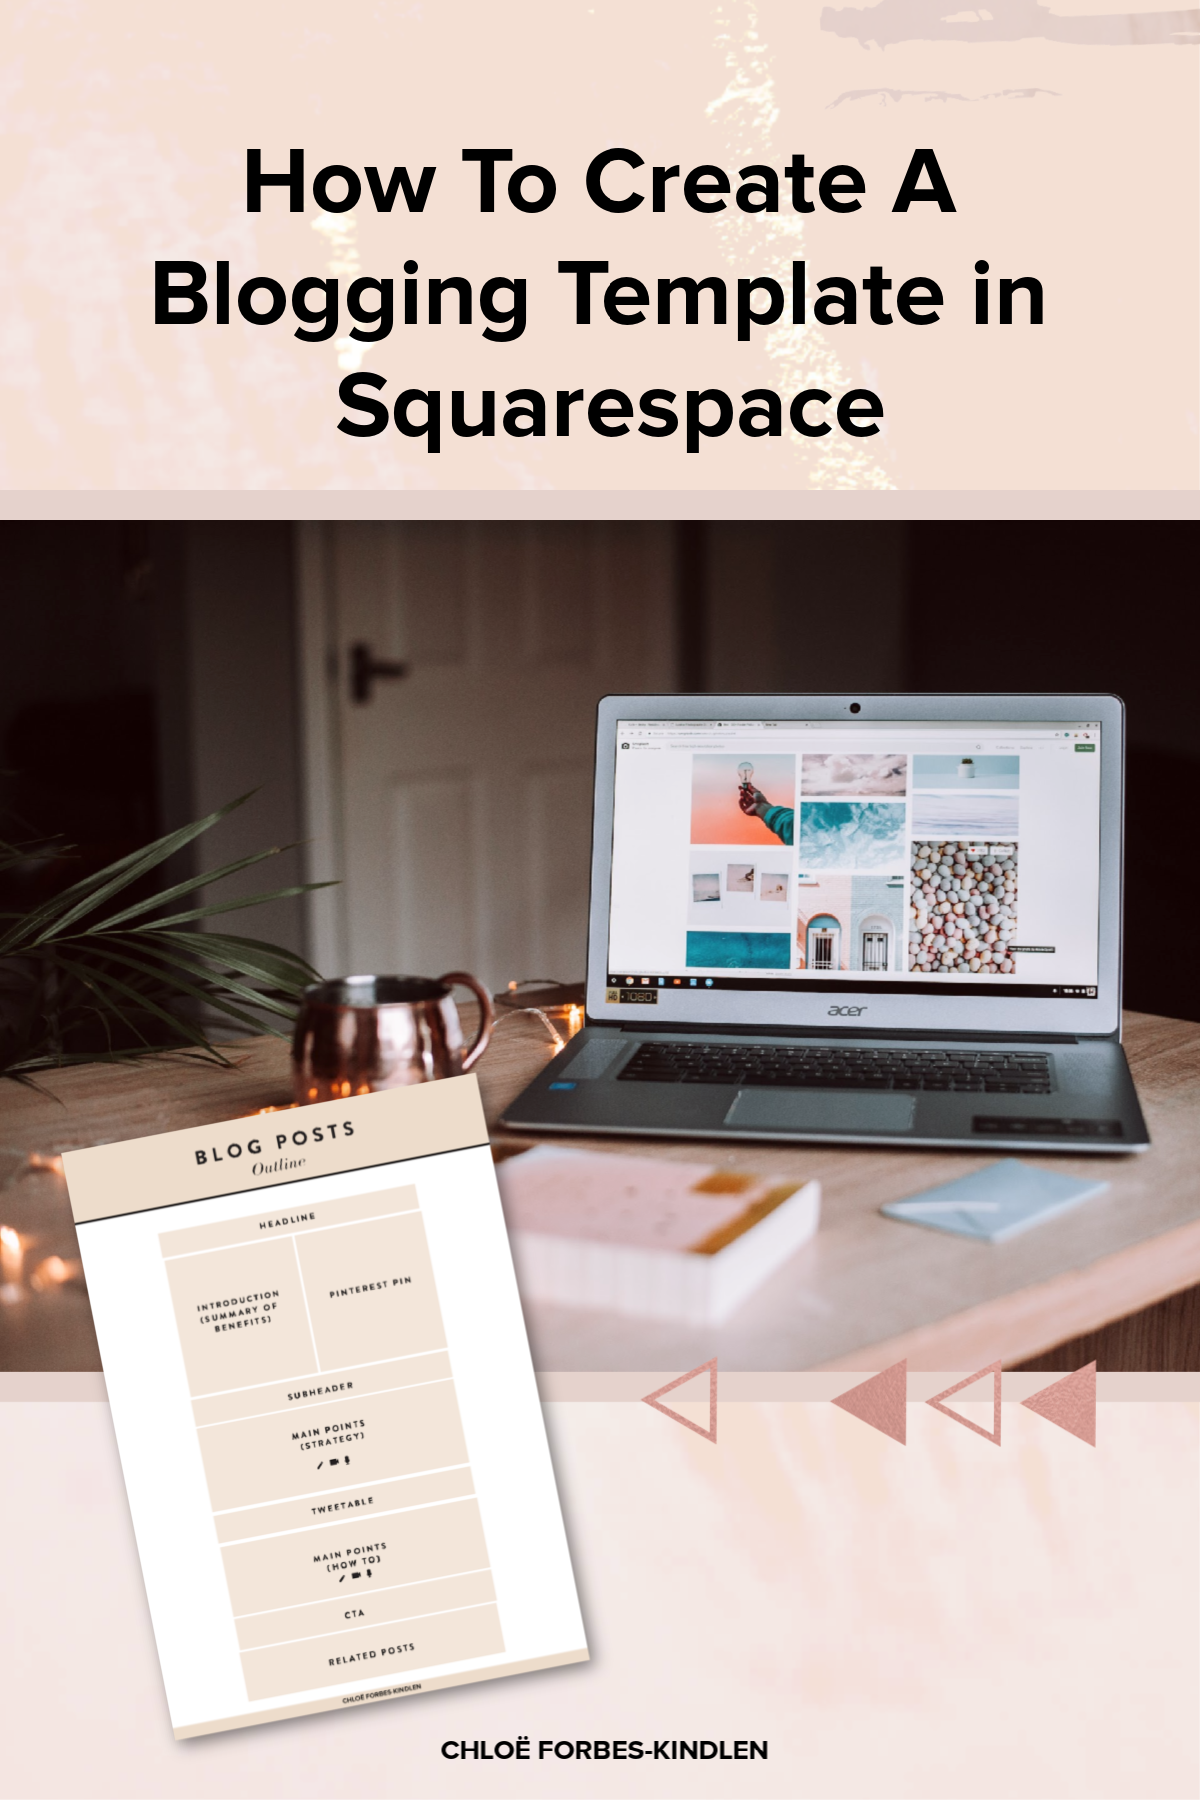 Chloe Forbes-Kindlen How To Create A Blogging Template in Squarespace (1).png